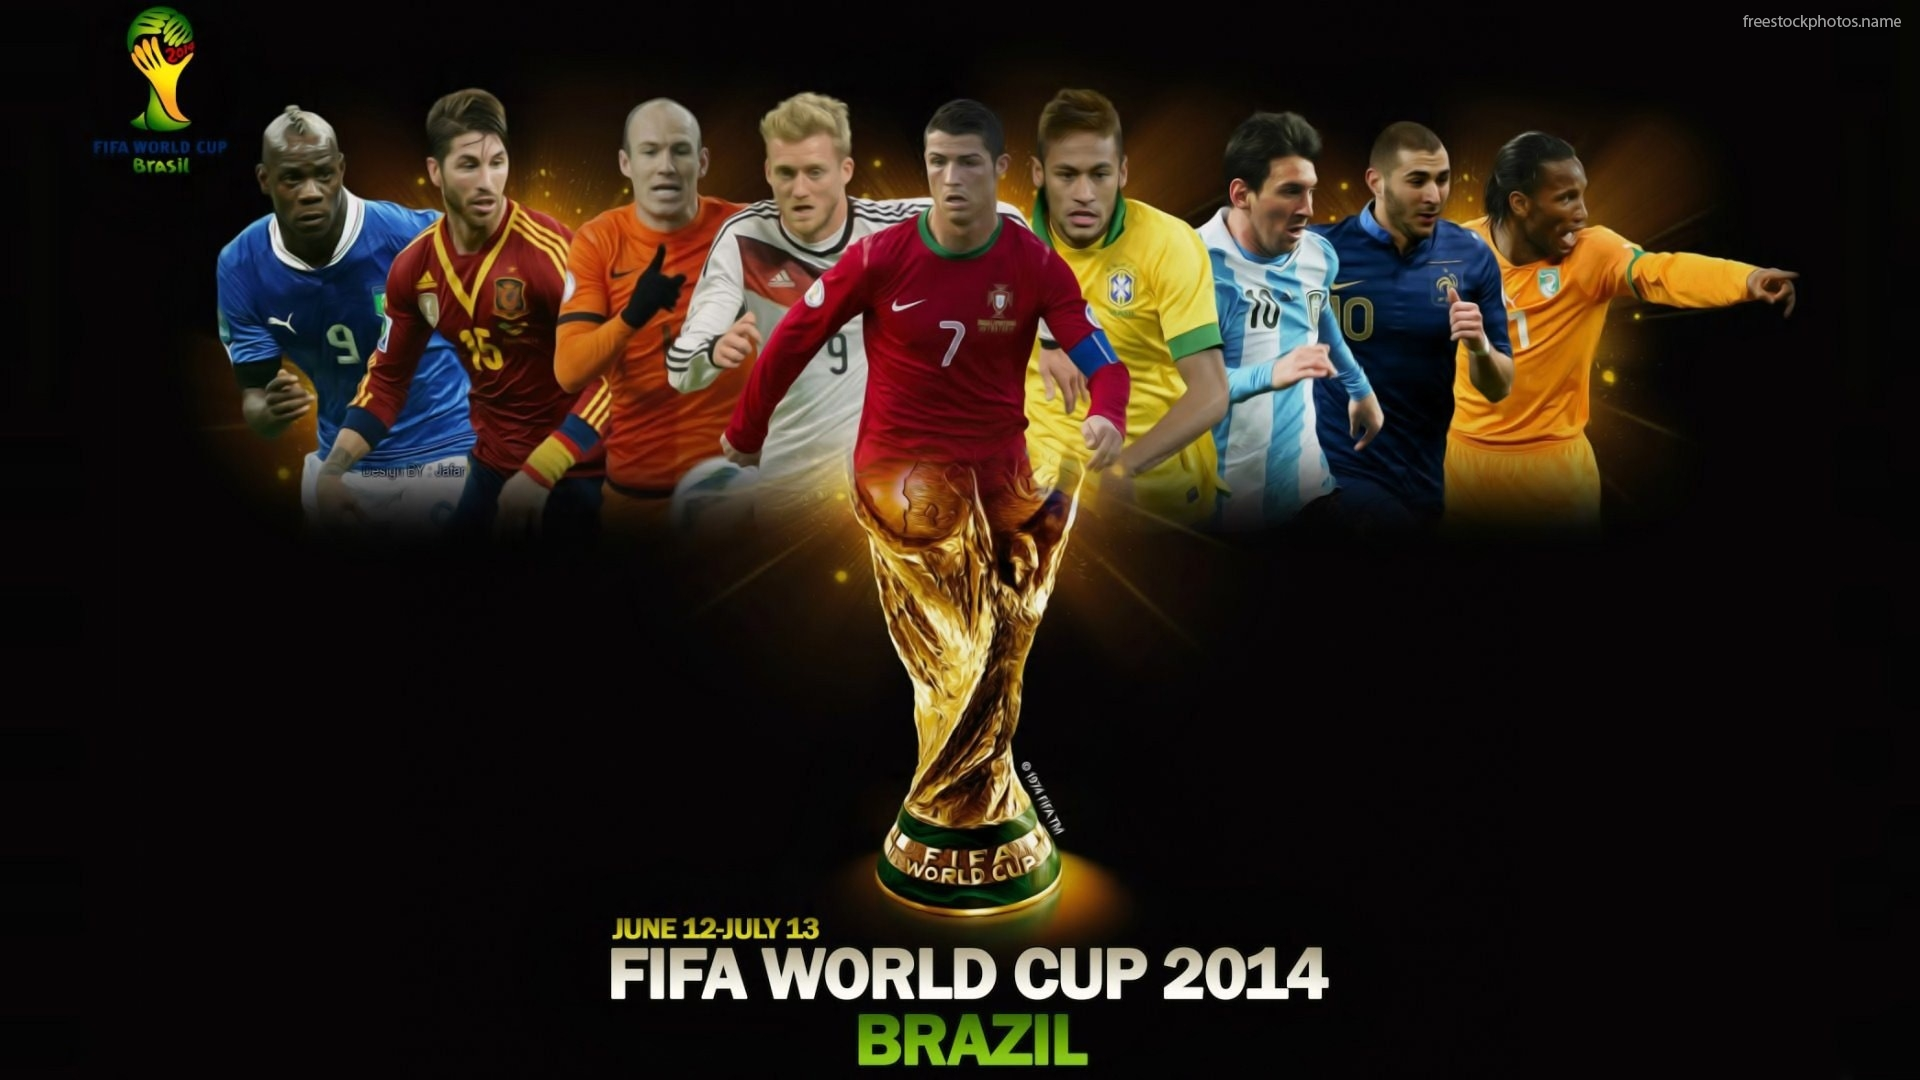 Download Stock Photos of best soccer players in the world 2014 images 1920x1080